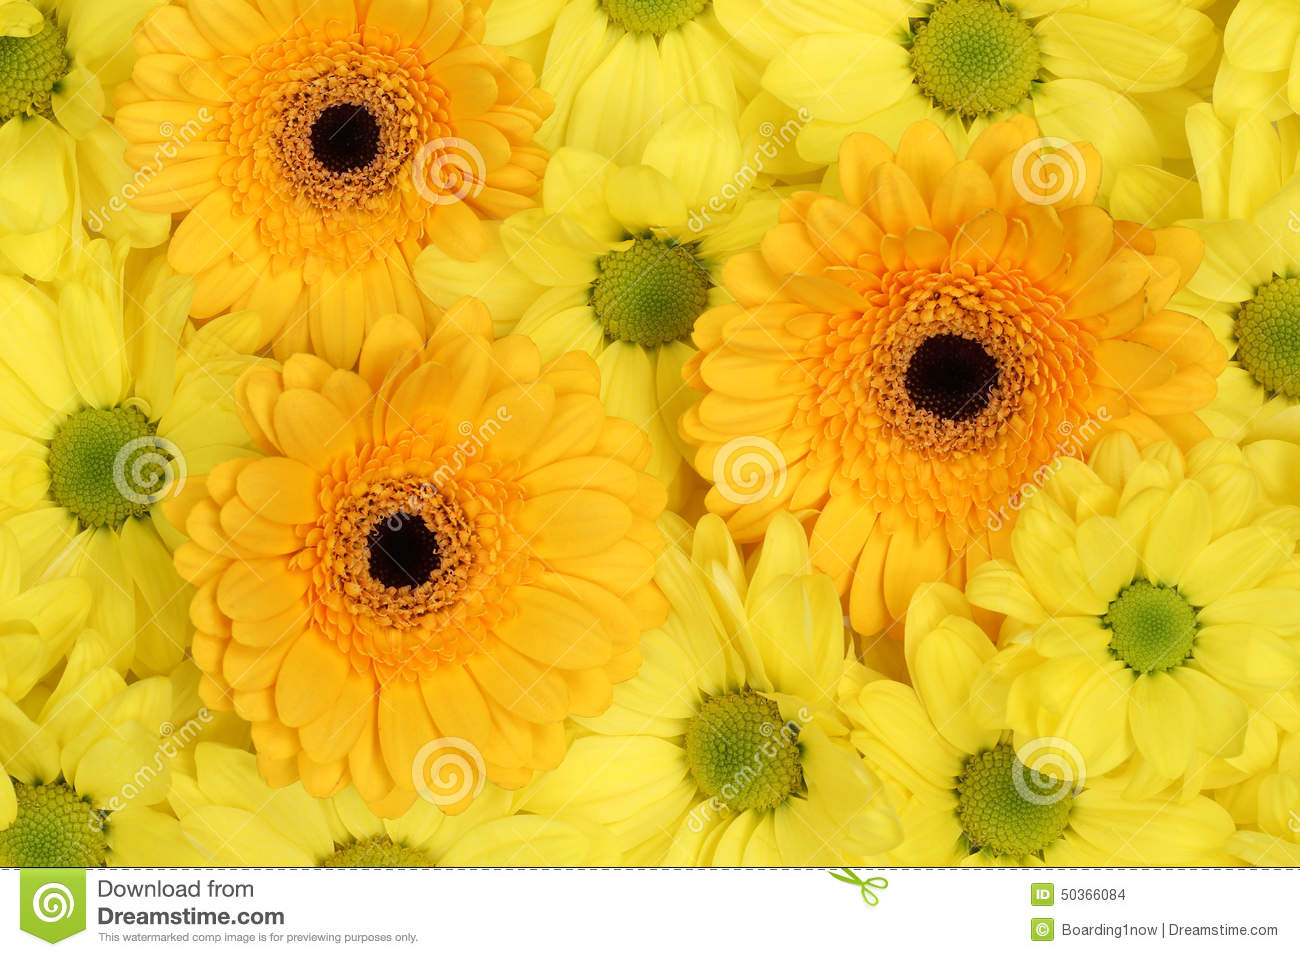 Spring day flowers choice image flower decoration ideas spring day flowers gallery flower decoration ideas spring day flowers images flower decoration ideas spring day mightylinksfo